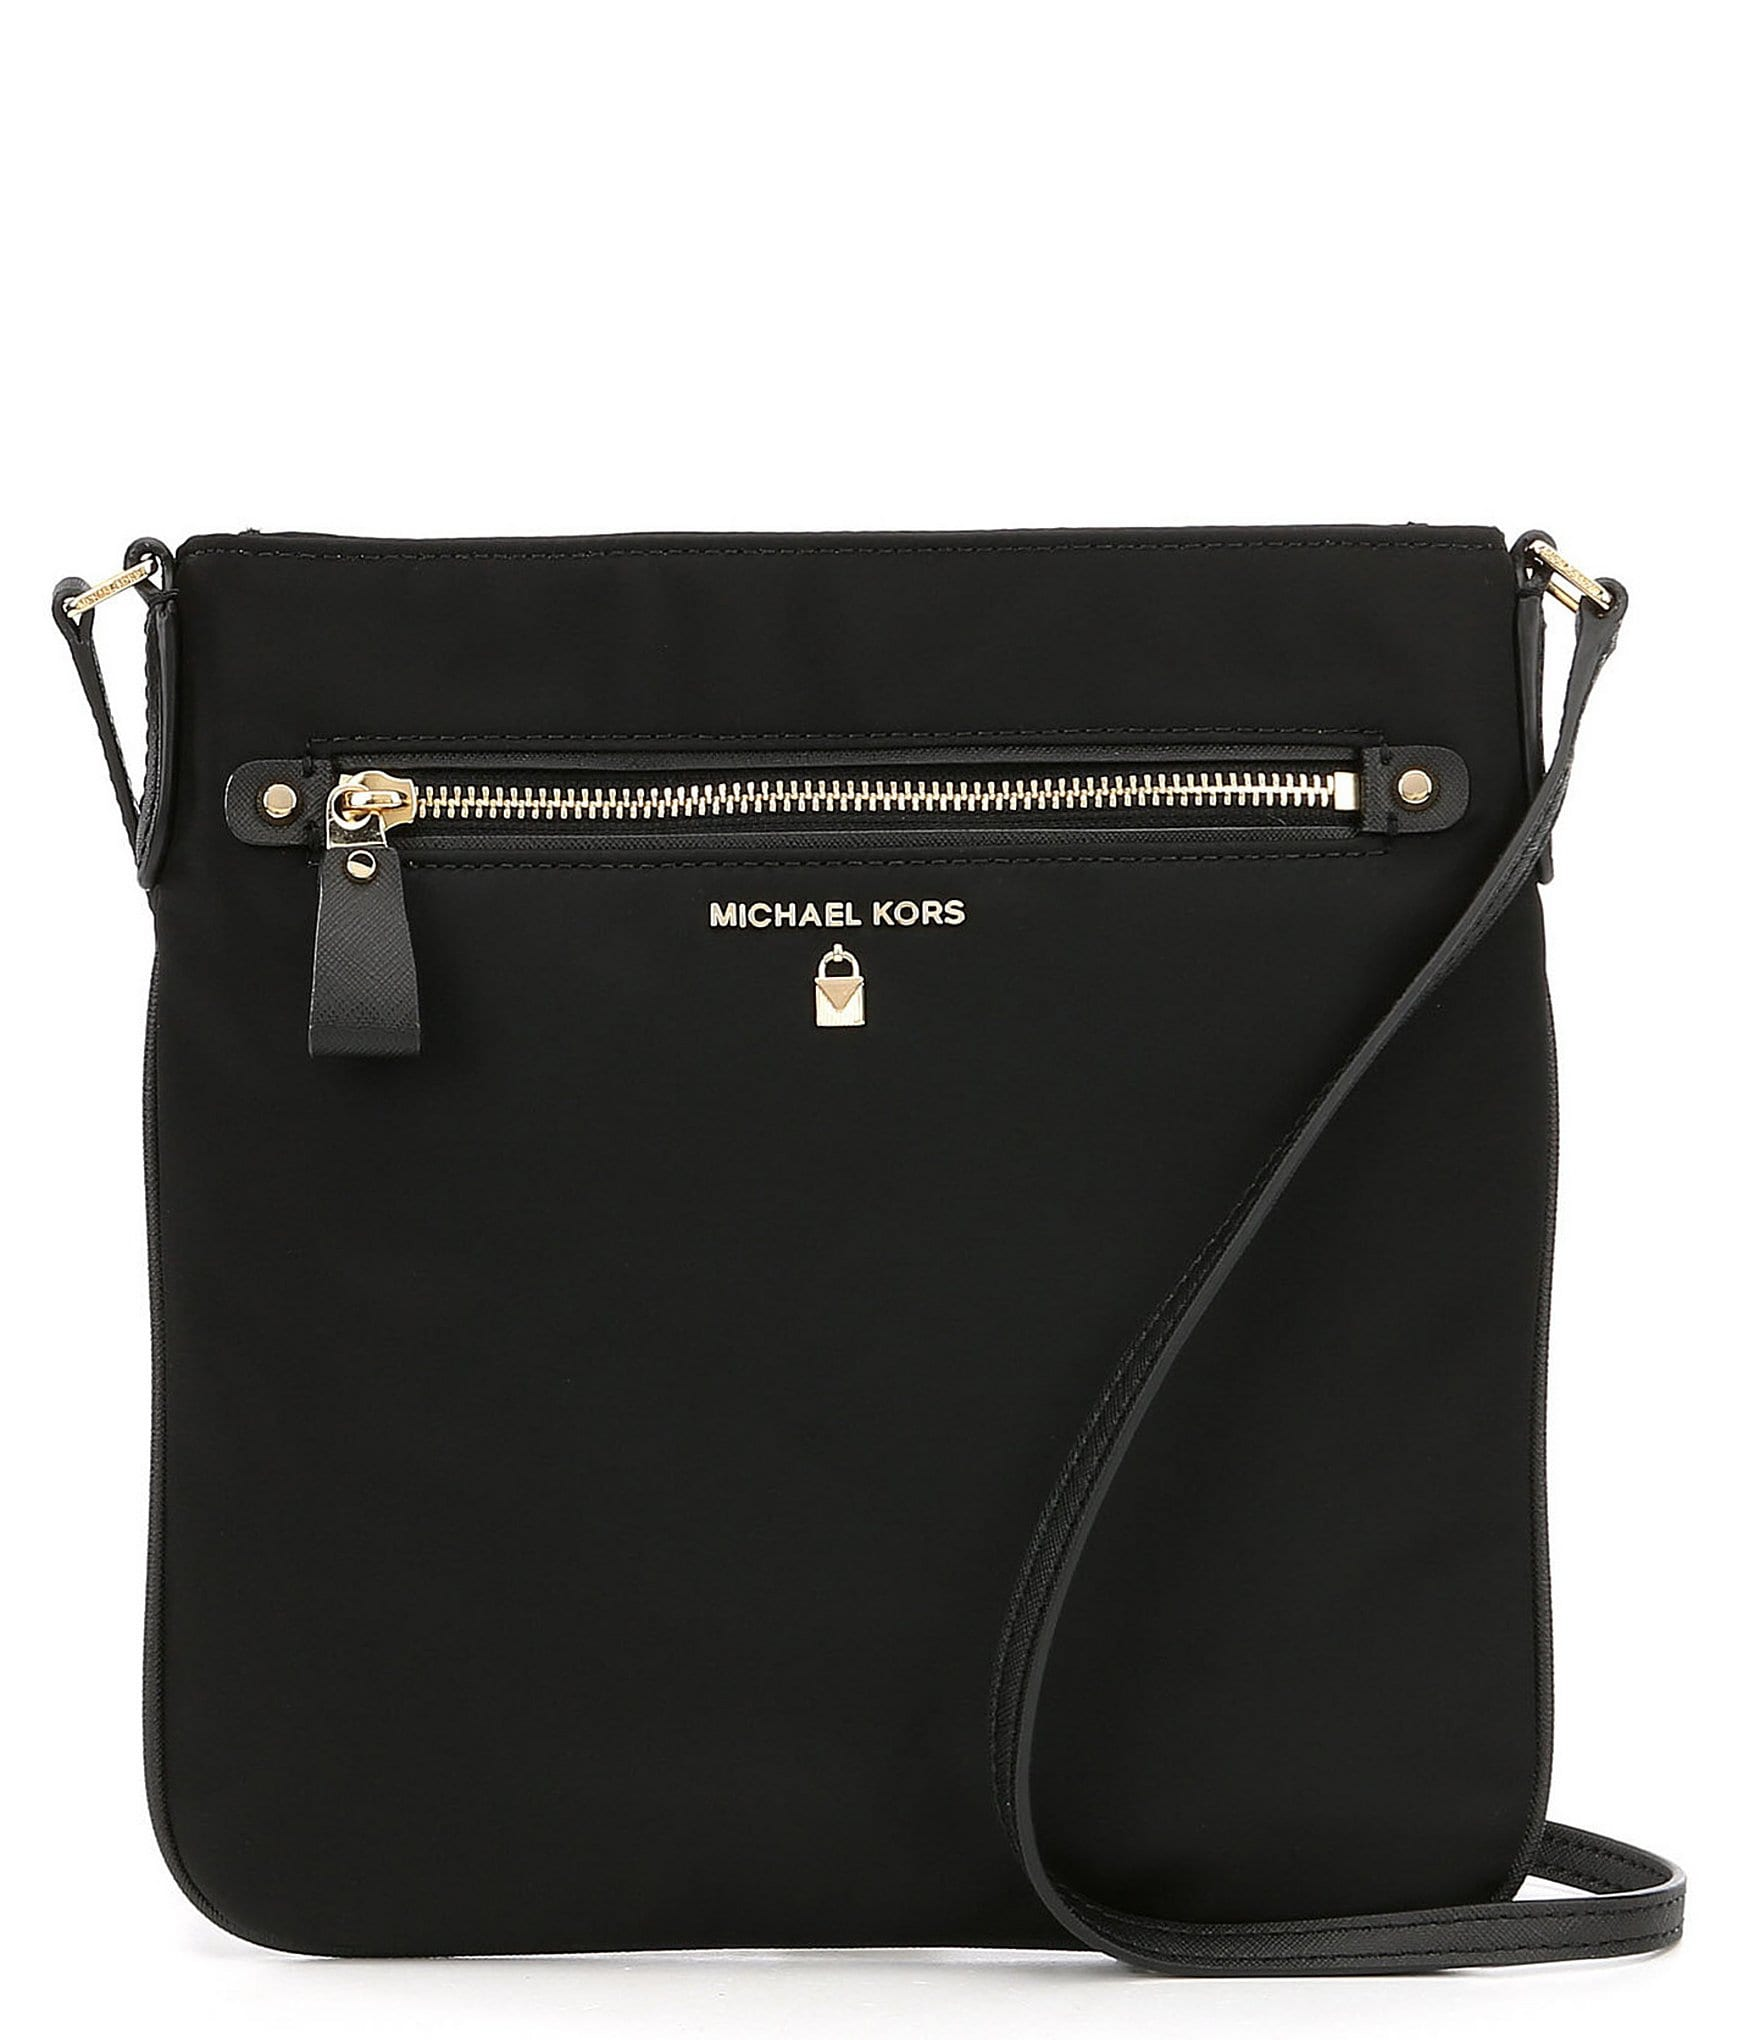 8f11bc2825a5d2 Michael Kors Bags On Sale Kelsey | Stanford Center for Opportunity ...